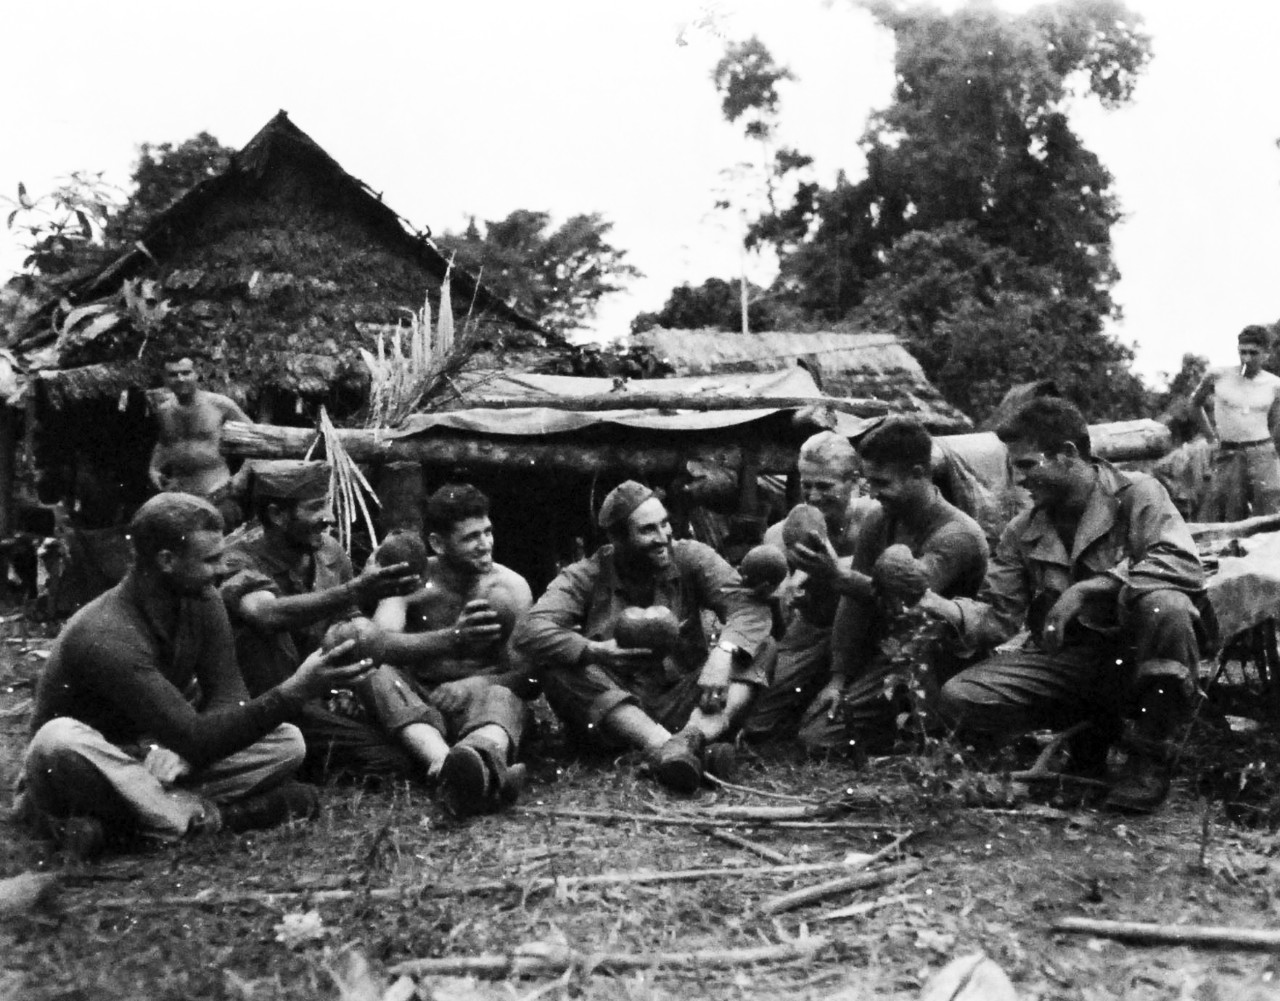 "127-GW-966-77431:  Battle of Cape Gloucester, New Britain, December 1943-January 1944 ""Birthday Toast"".   A toast if drunk in coconut juice on the occasion of the 24th birthday of Sergeant Milan A. Cicak, USMC.  The birthday found him and his buddies on a patrol in the Cape Glouchester jungle.  That's Cicak in the center.  Left to right:  Gunnery Sergeant William E. Eisenhower; Private First Class Dominik D. Garogano.   Official U.S. Marine Corps Photograph, now in the collections of the National Archives.   (2014/7/9)."